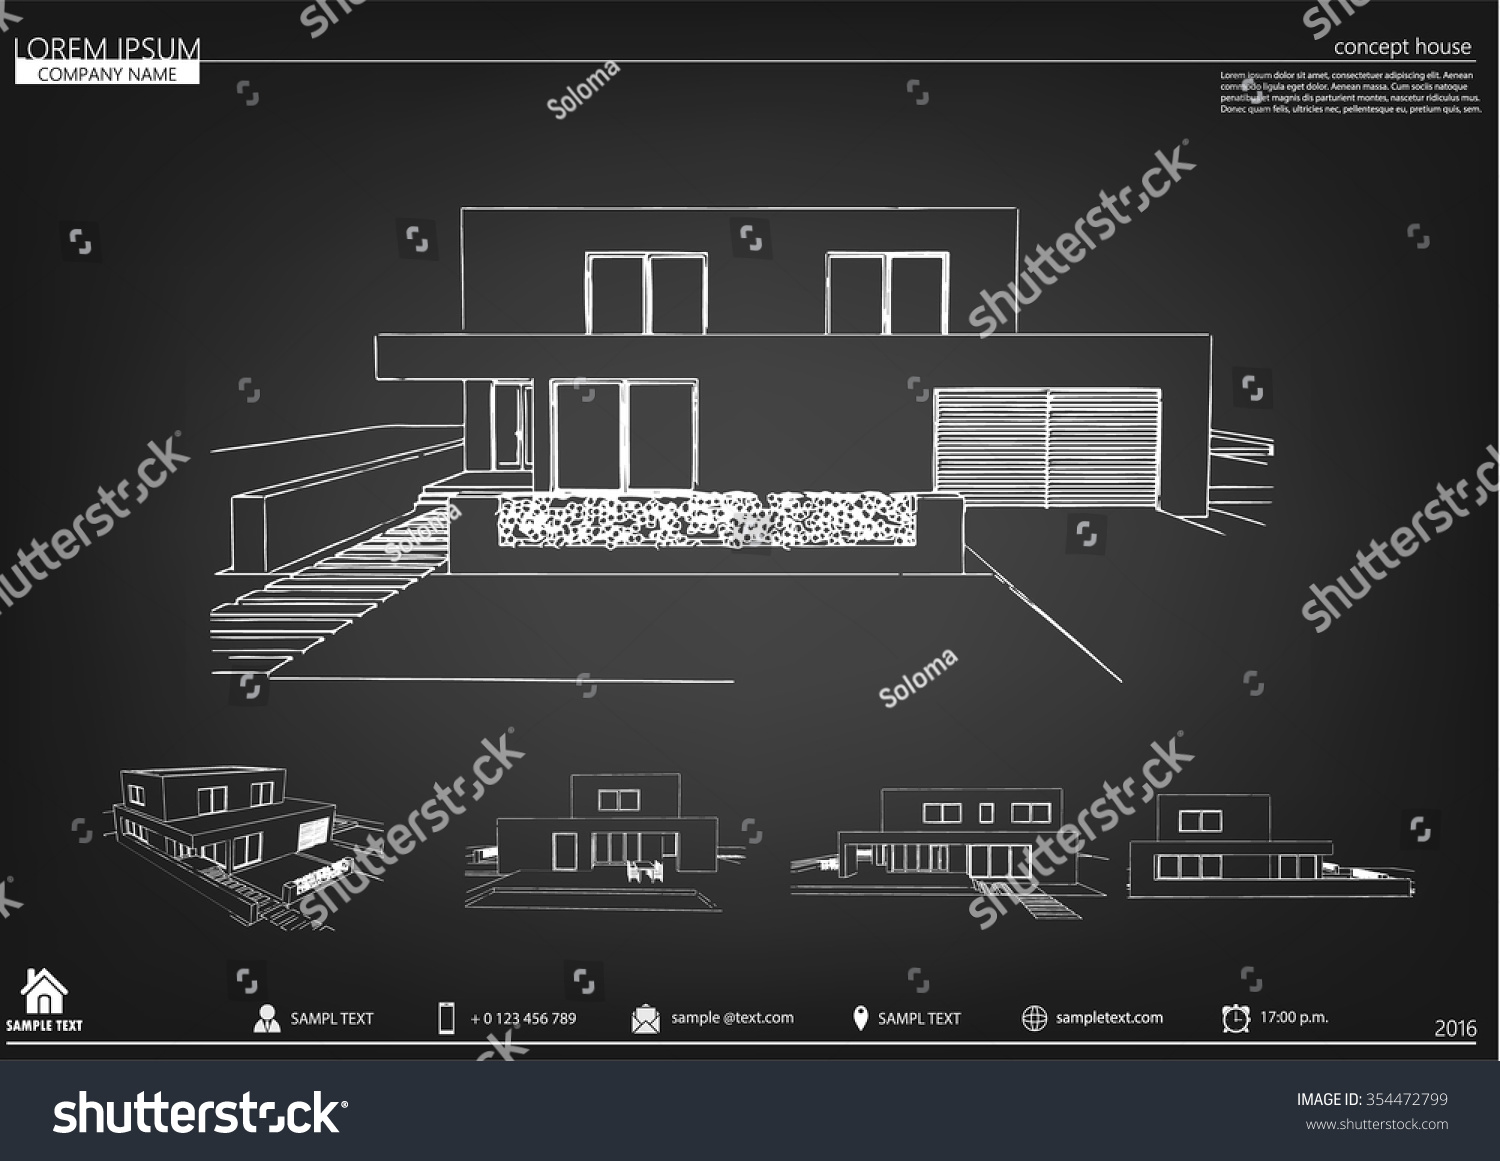 Wireframe blueprint drawing 3 d building vector stock vector wireframe blueprint drawing of 3d building vector architectural template background architectural drawing architectural malvernweather